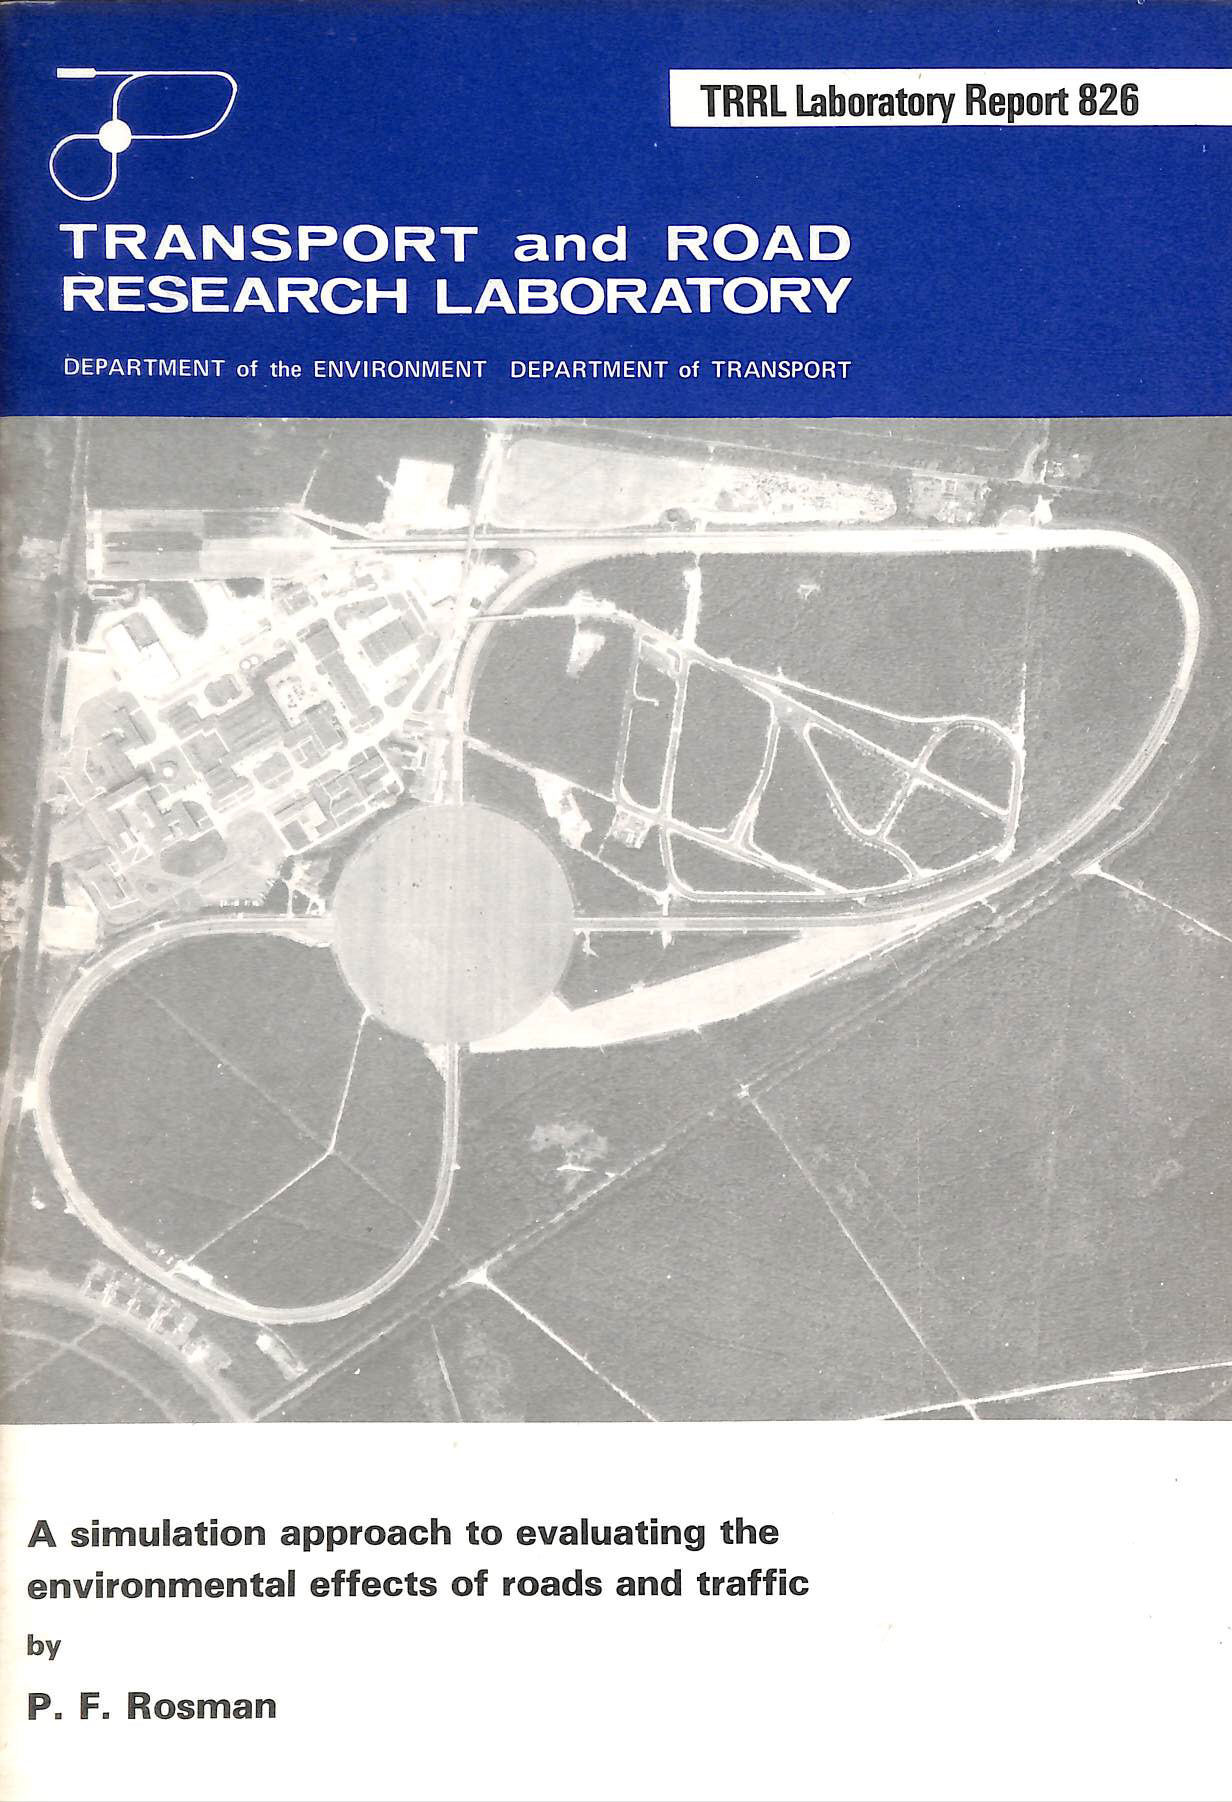 Image for Transport and Road Research Laboratory, A Simulation Apprach to Evaluationg the Environmental Effects of Roads and Traffic, TRRL Laoratory Report 826